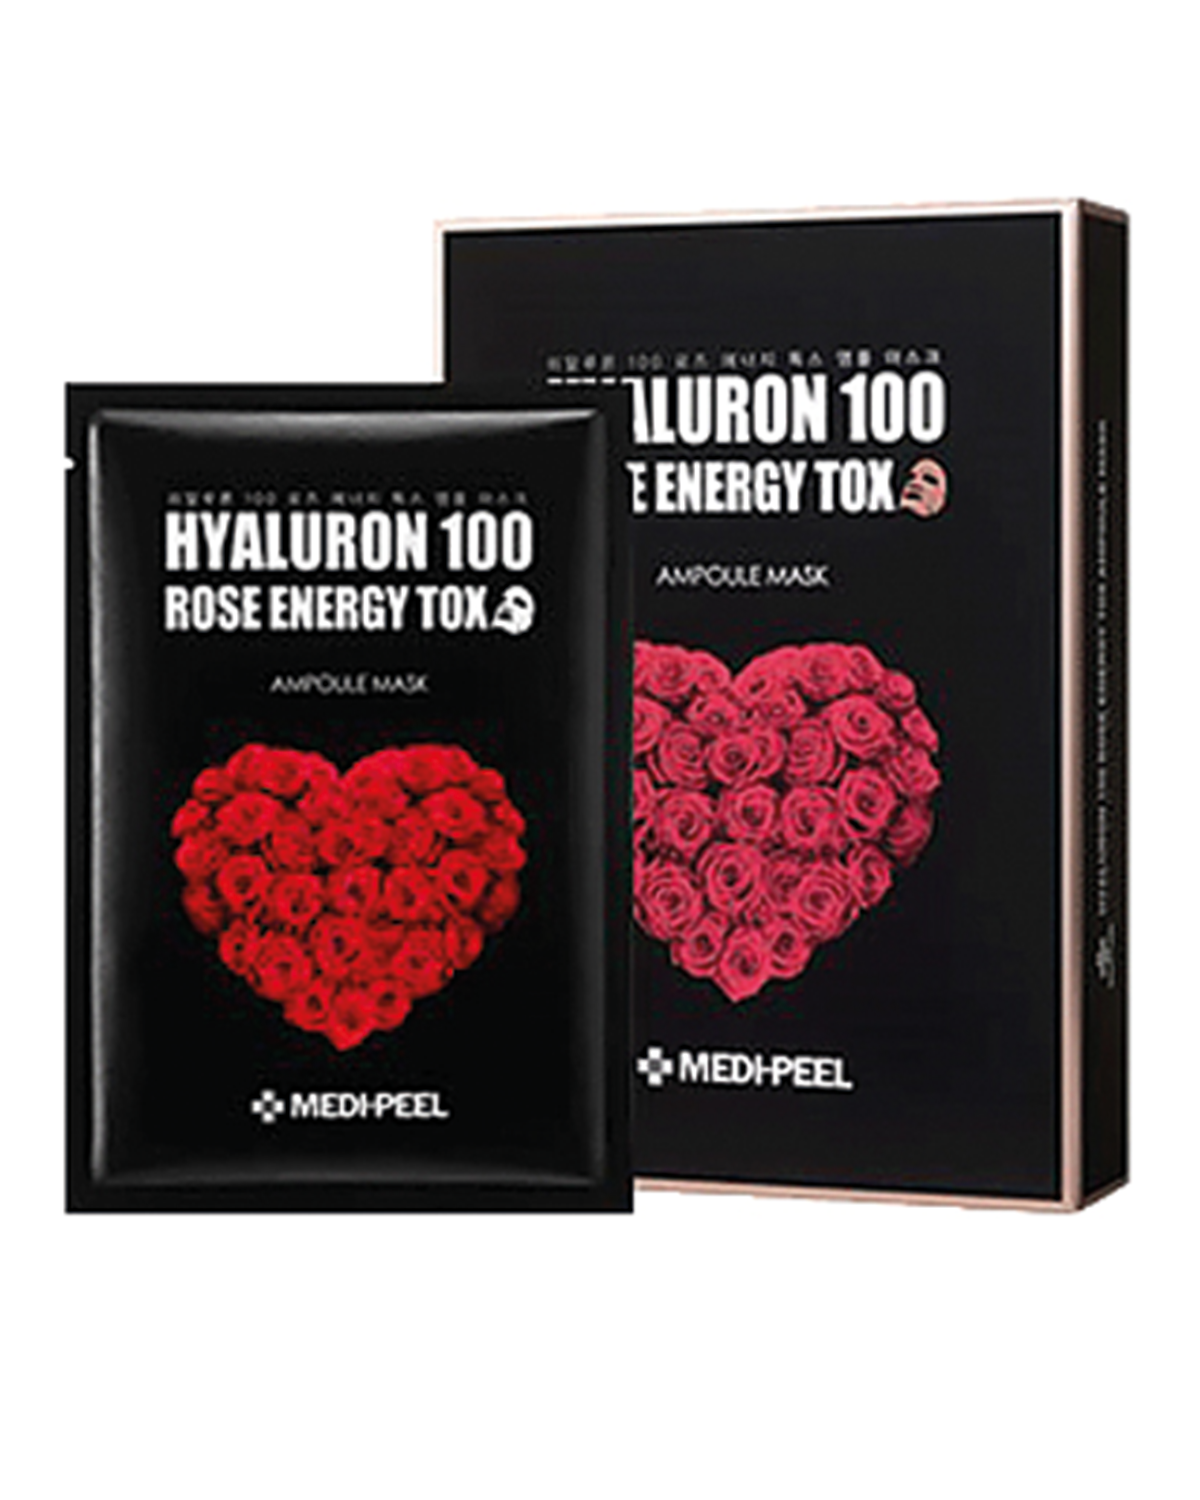 MEDI-PEEL Hyaluron 100 Rose Energy Tox 30 ml x 10 ea